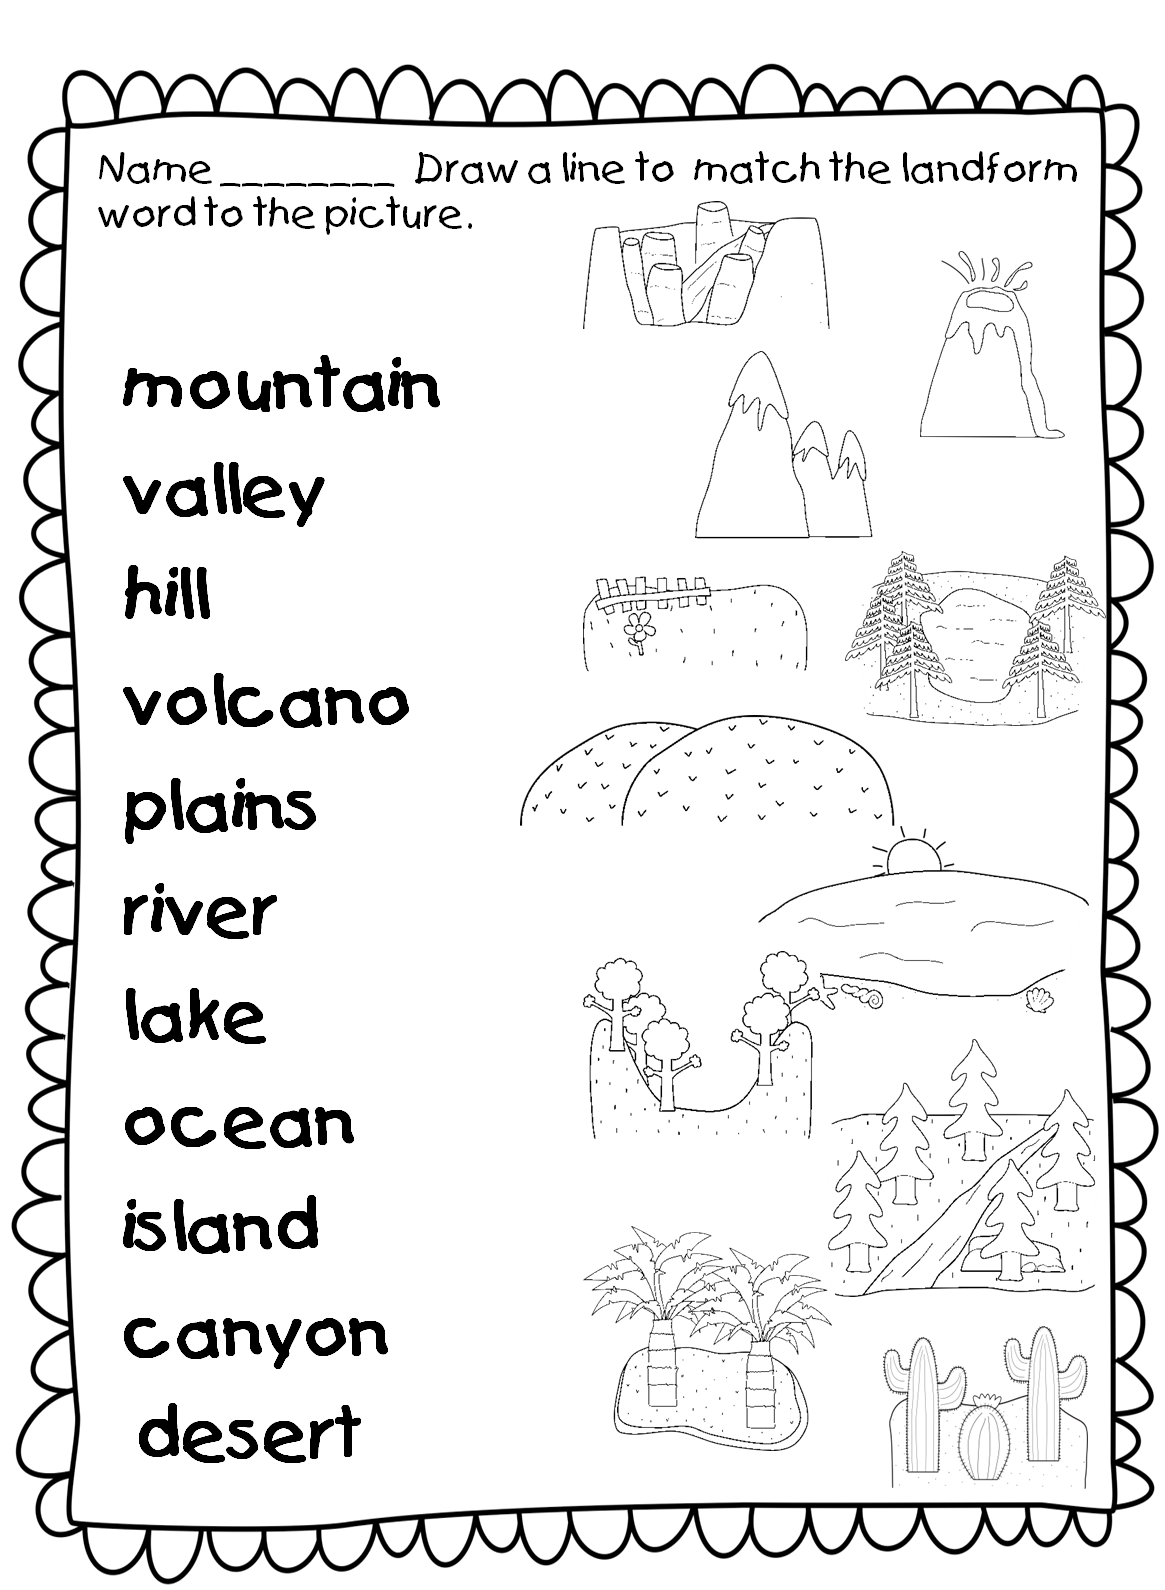 worksheet Landform Worksheet first grade simple matching worksheet to test students knowledge this landforms worksheets allows match the names of found all over world with correct picture